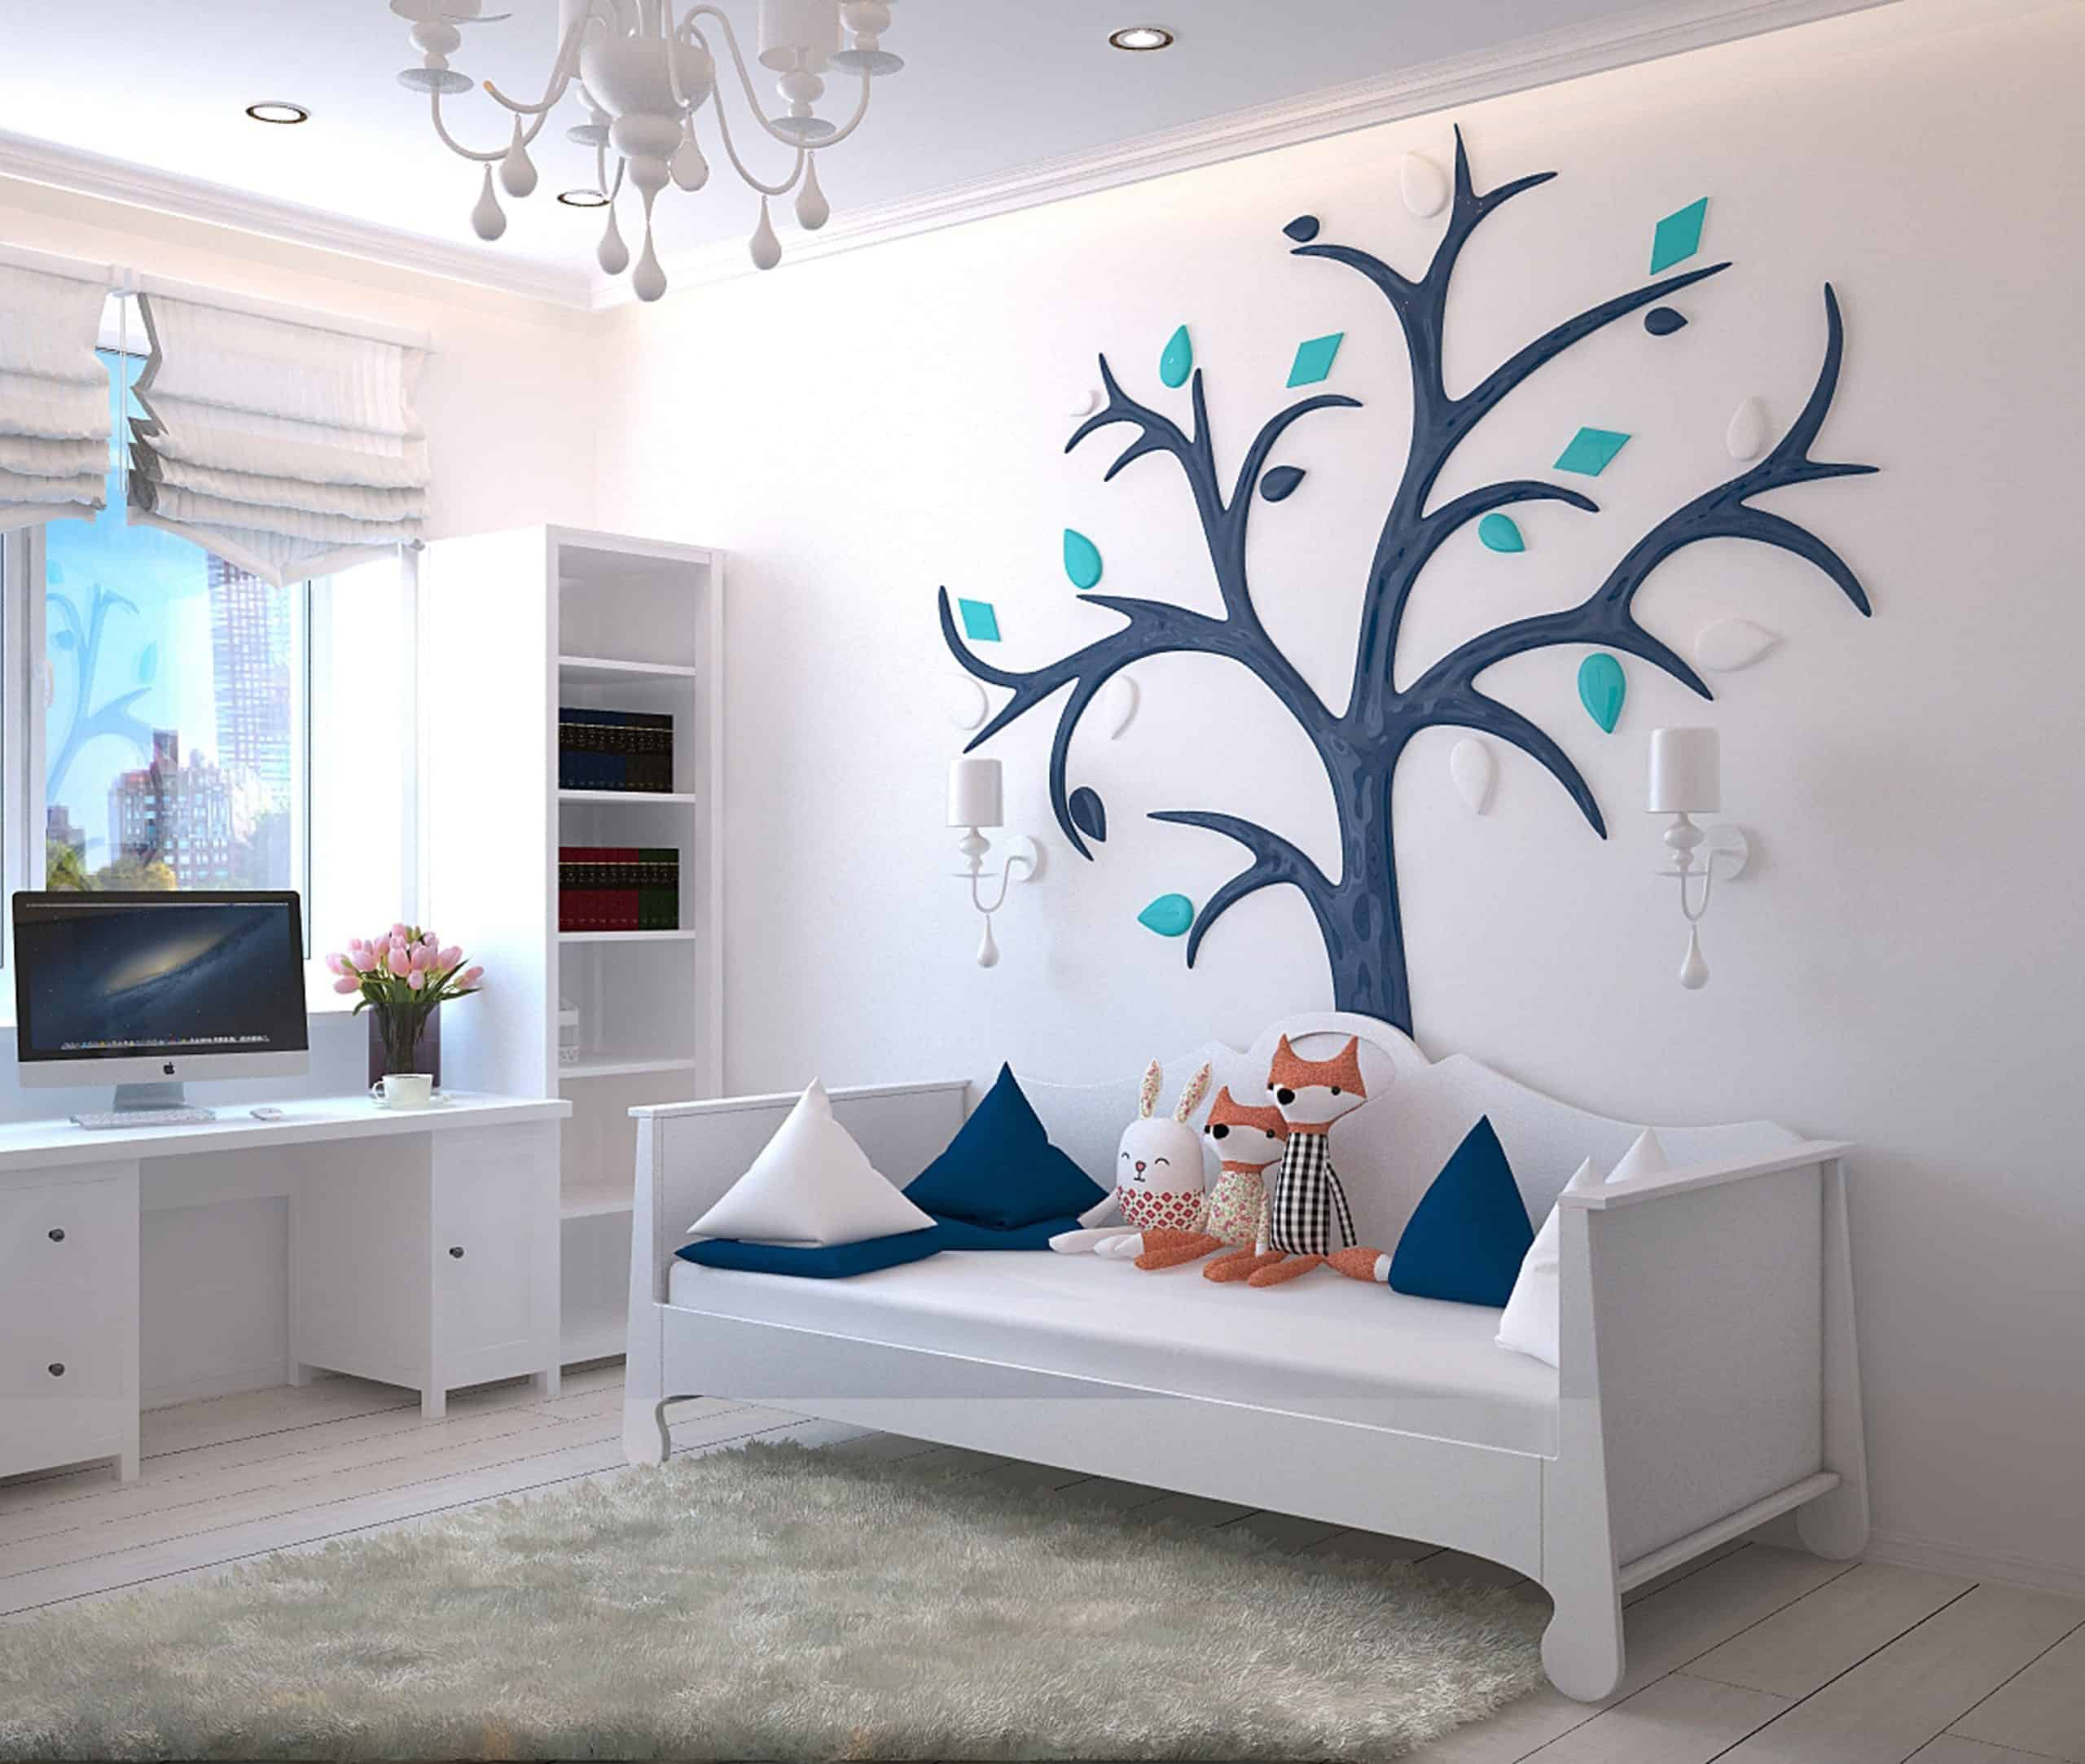 Bedroom Design - Top Trending Ideas For Kid's Bedroom